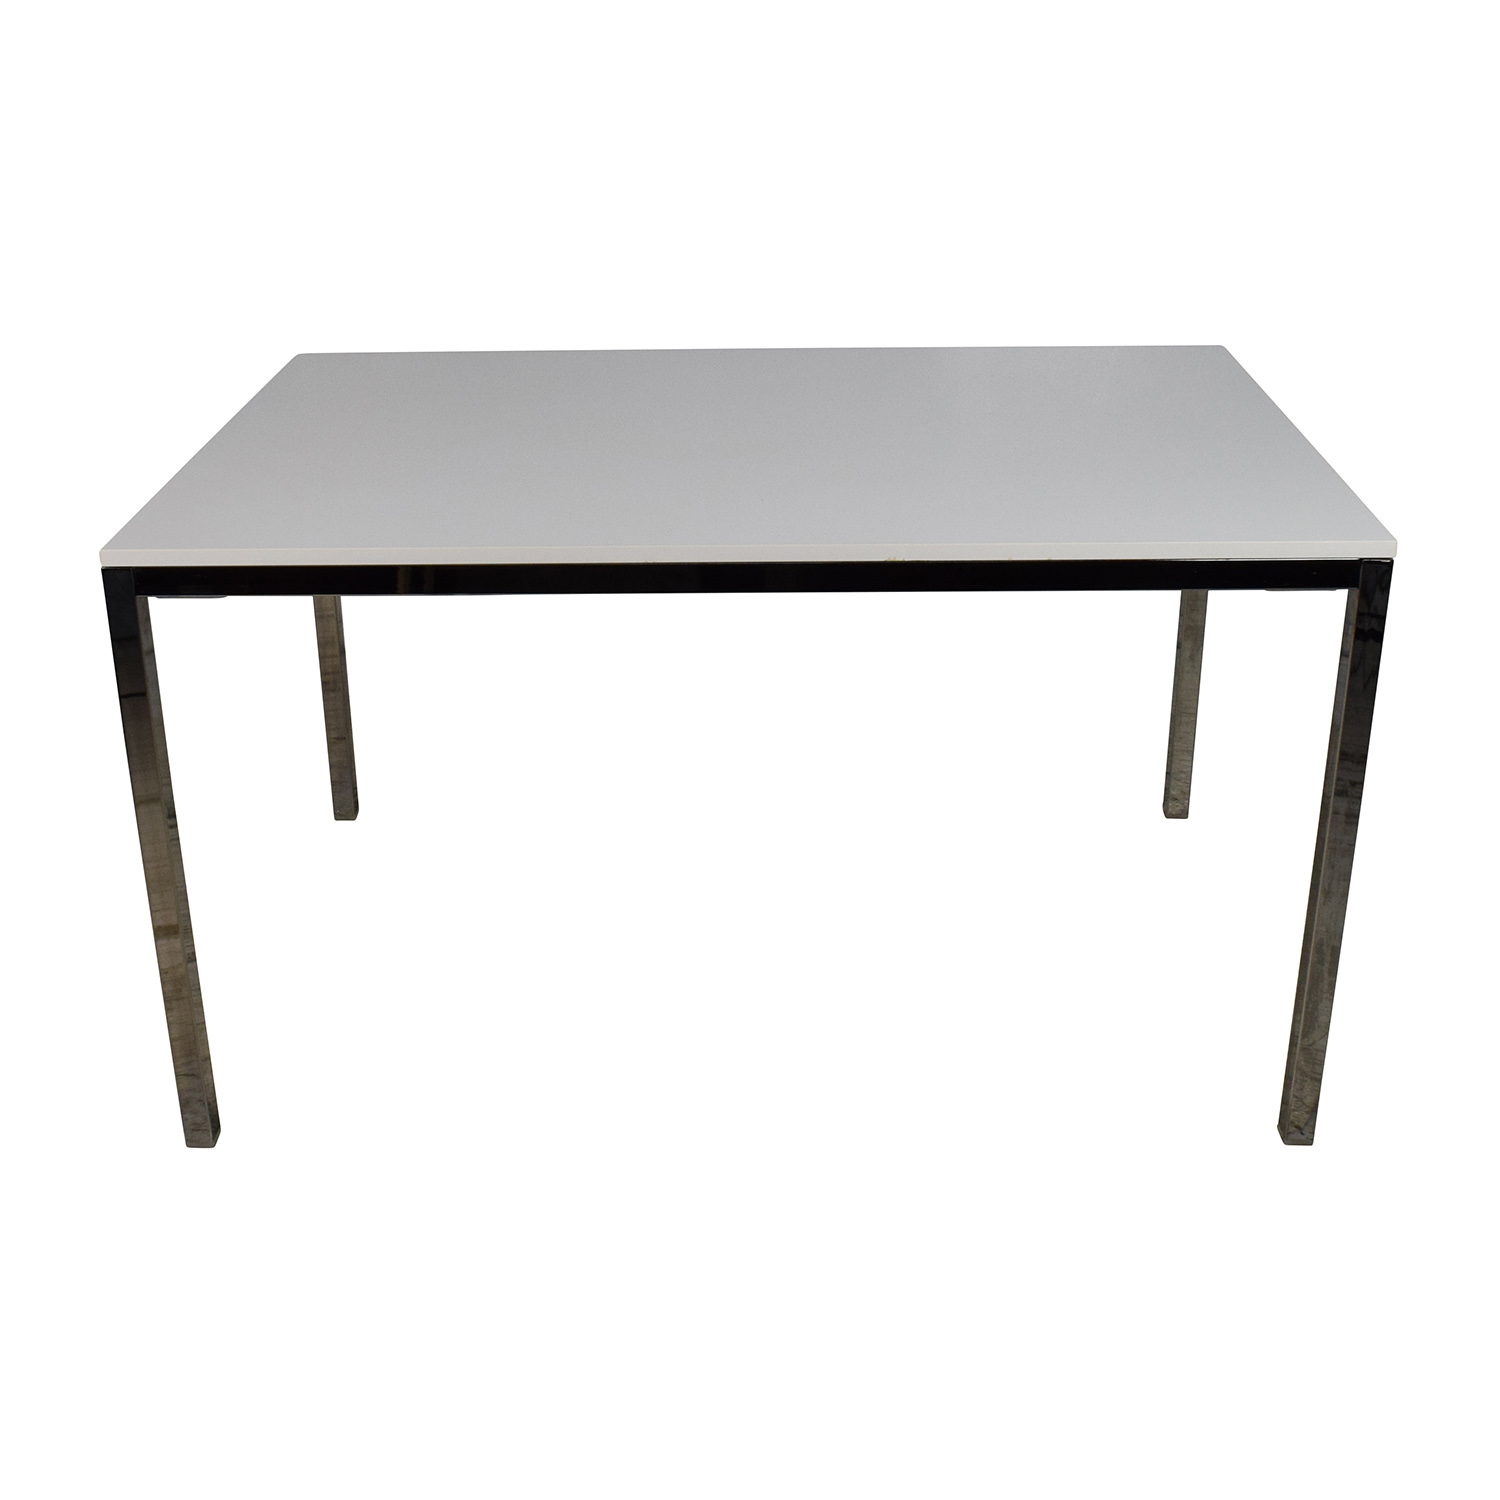 IKEA White Top Dining Table with Silver Chrome Legs / Dinner Tables